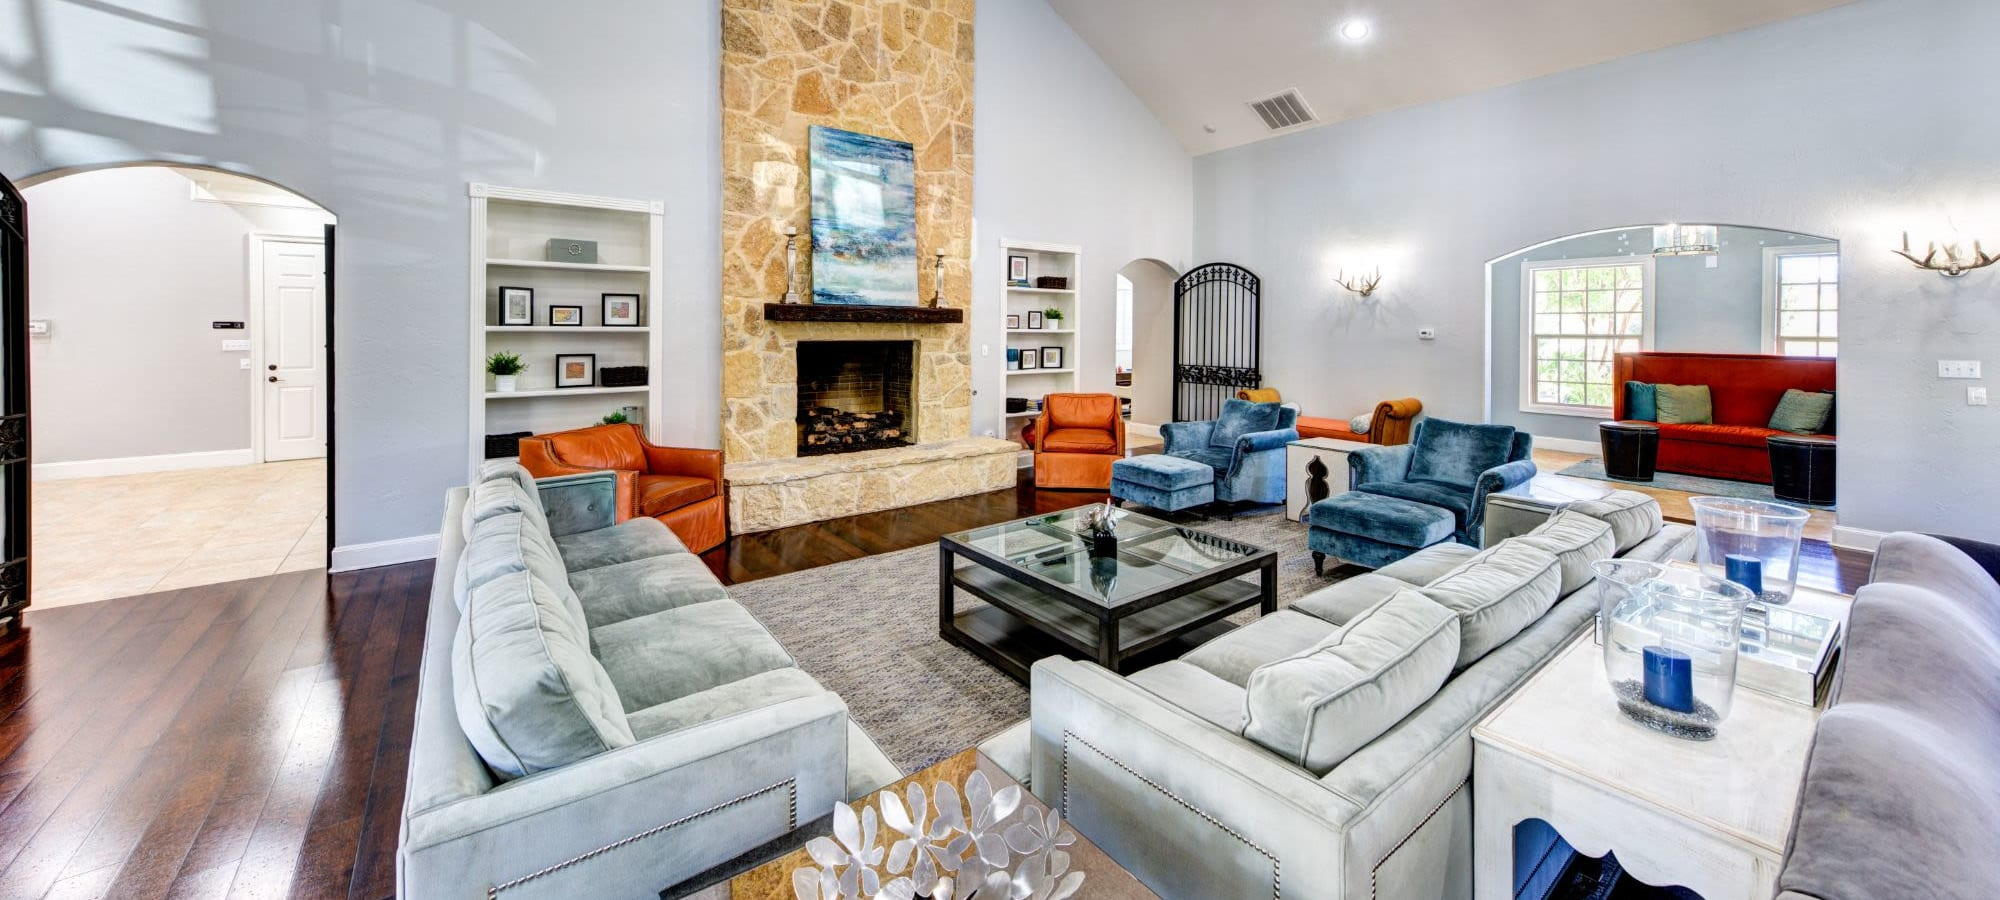 Resident information for Marquis at Silver Oaks in Grapevine, Texas